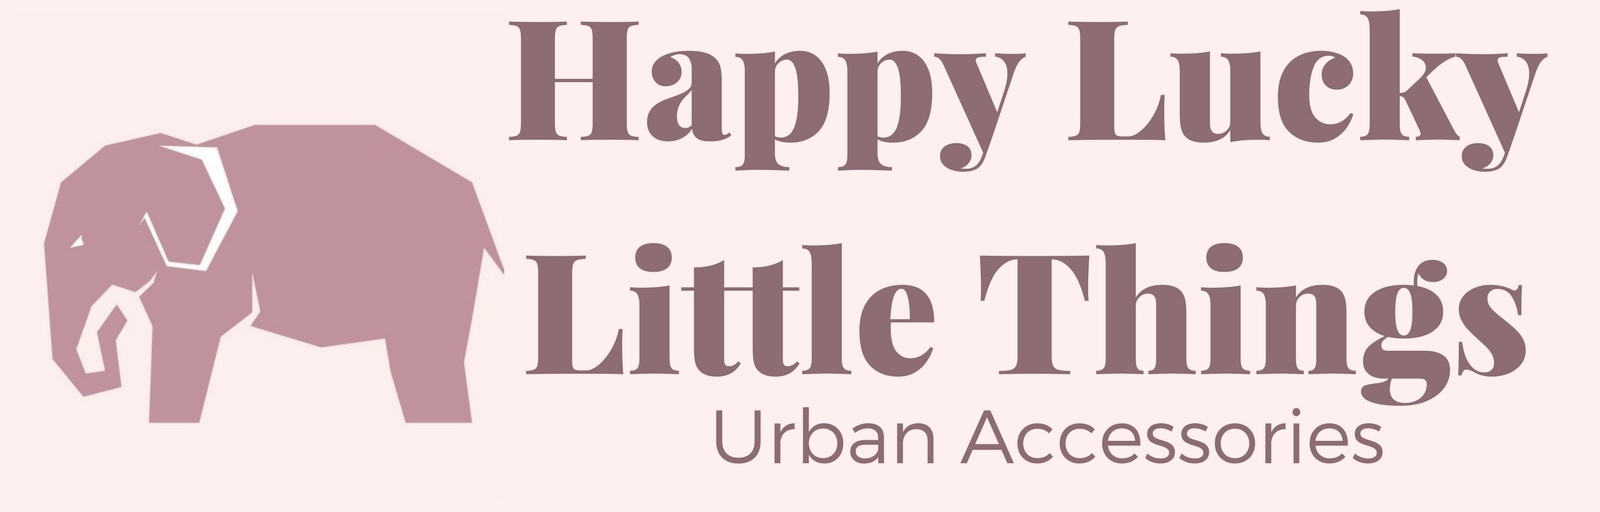 Happy Lucky Little Things